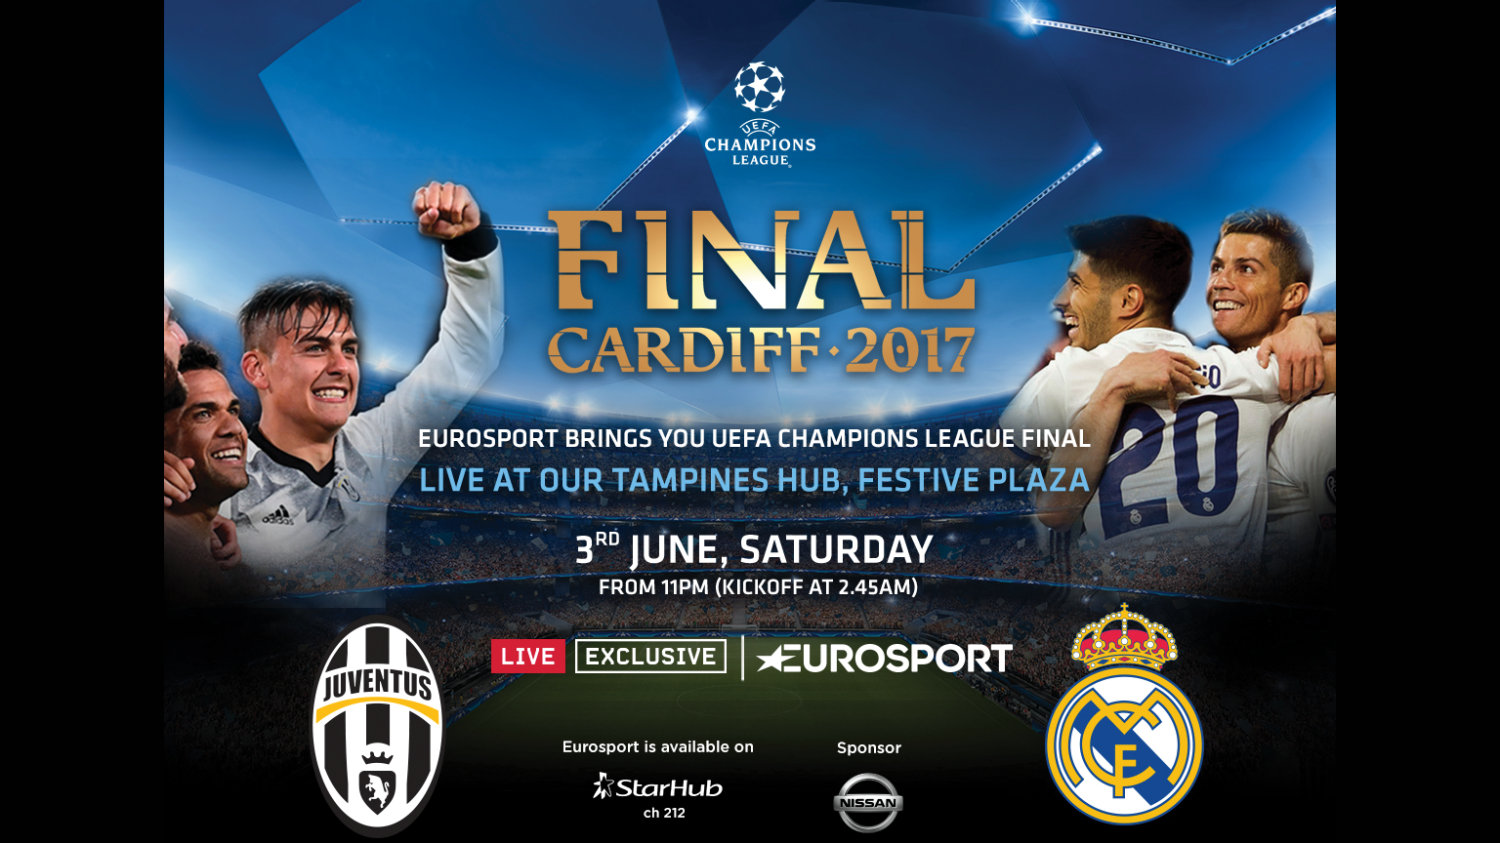 UEFA Champions League Finals